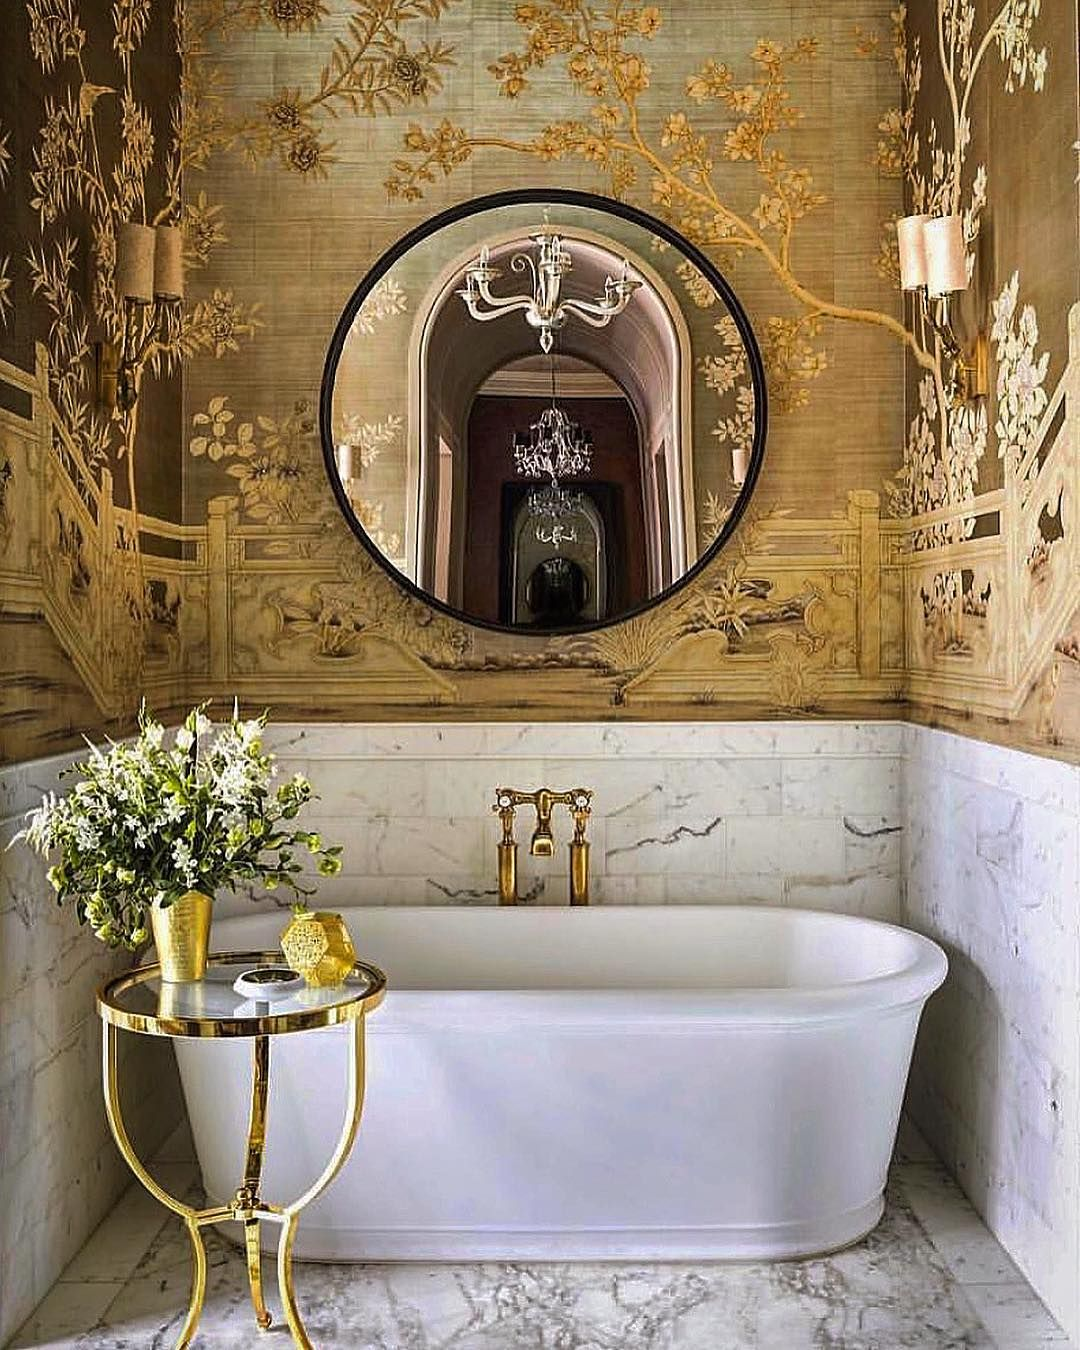 Pin By Carina Teed On Graces Room In 2019: Pin By Sofia Blixt On Interior Design In 2019